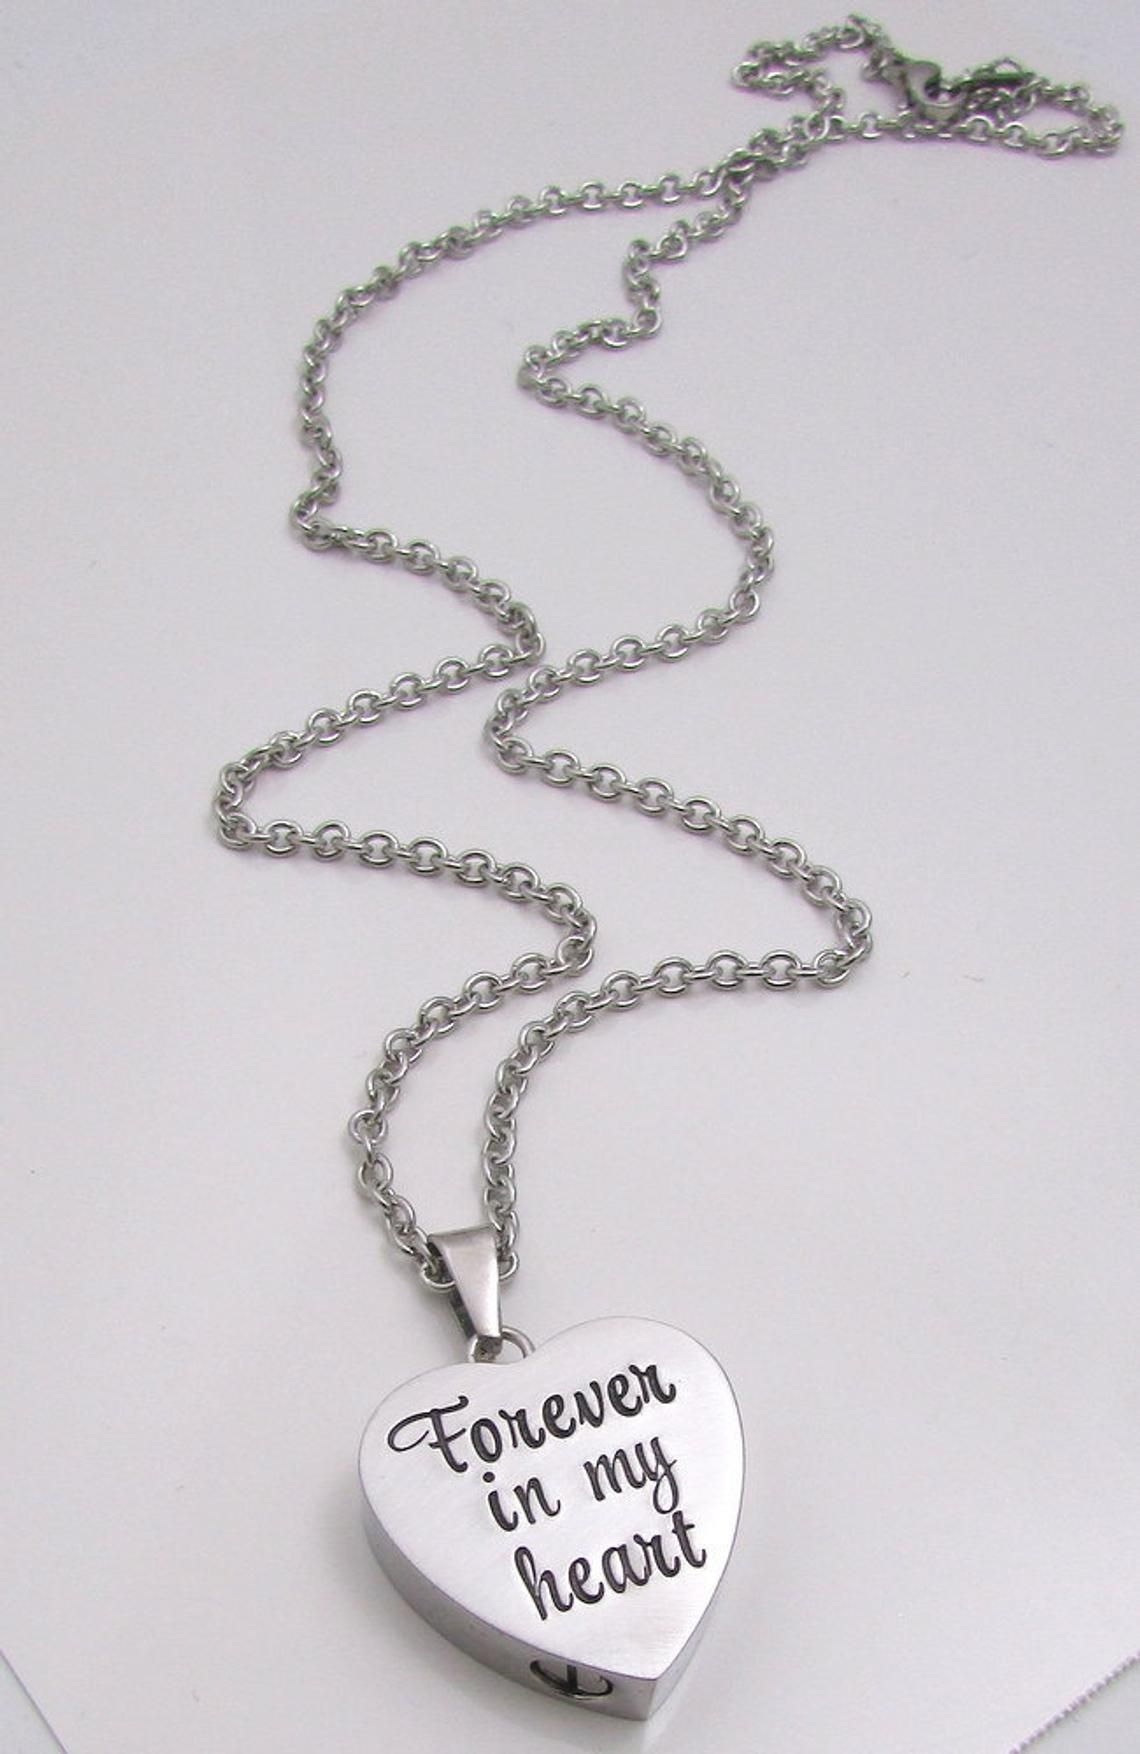 23bd88e929359 Personalized Necklace - Cremation Jewelry - Hand Stamped Necklace ...